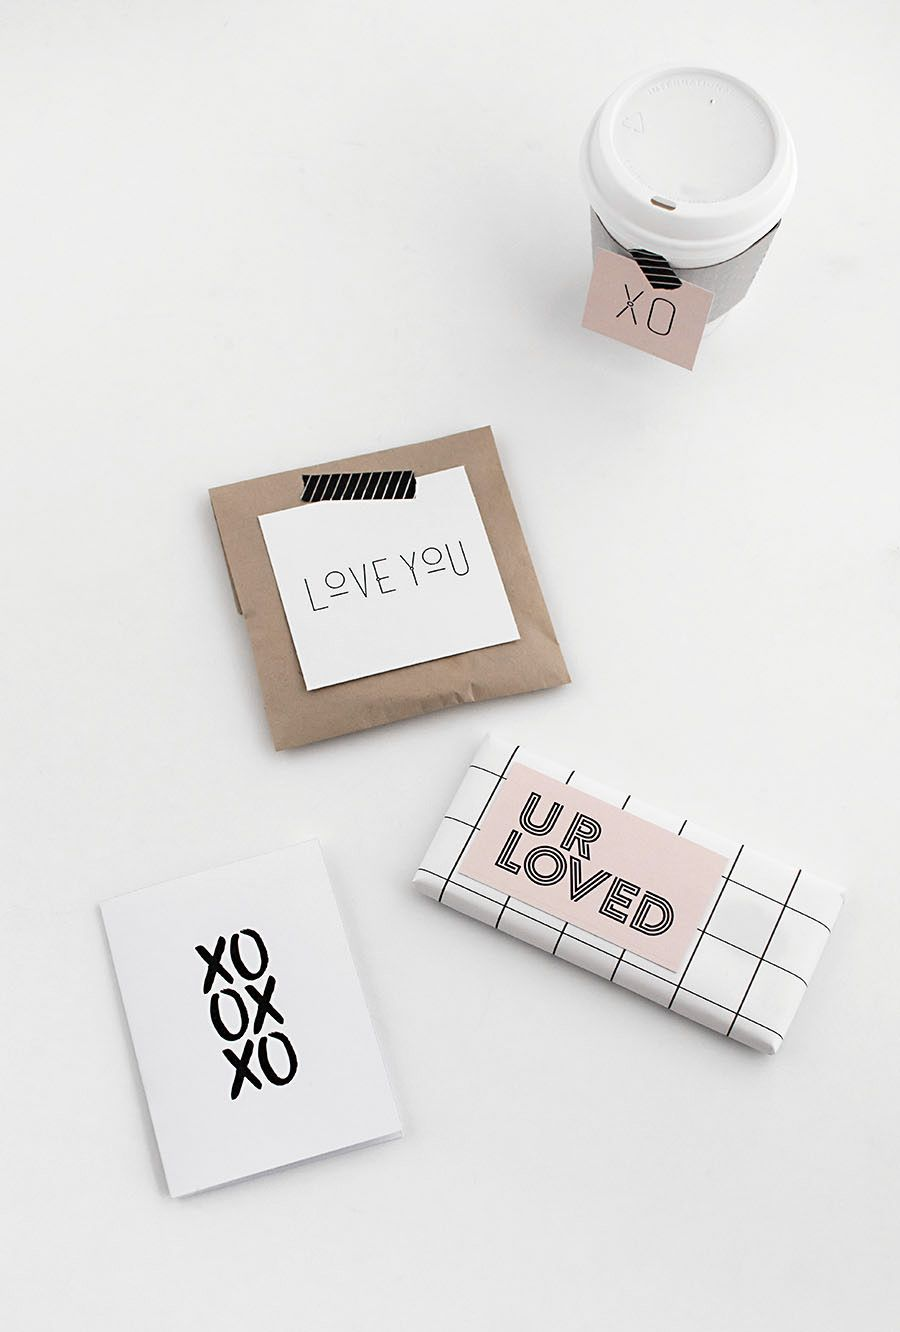 Modern valentines day cards and gift tags- free download.